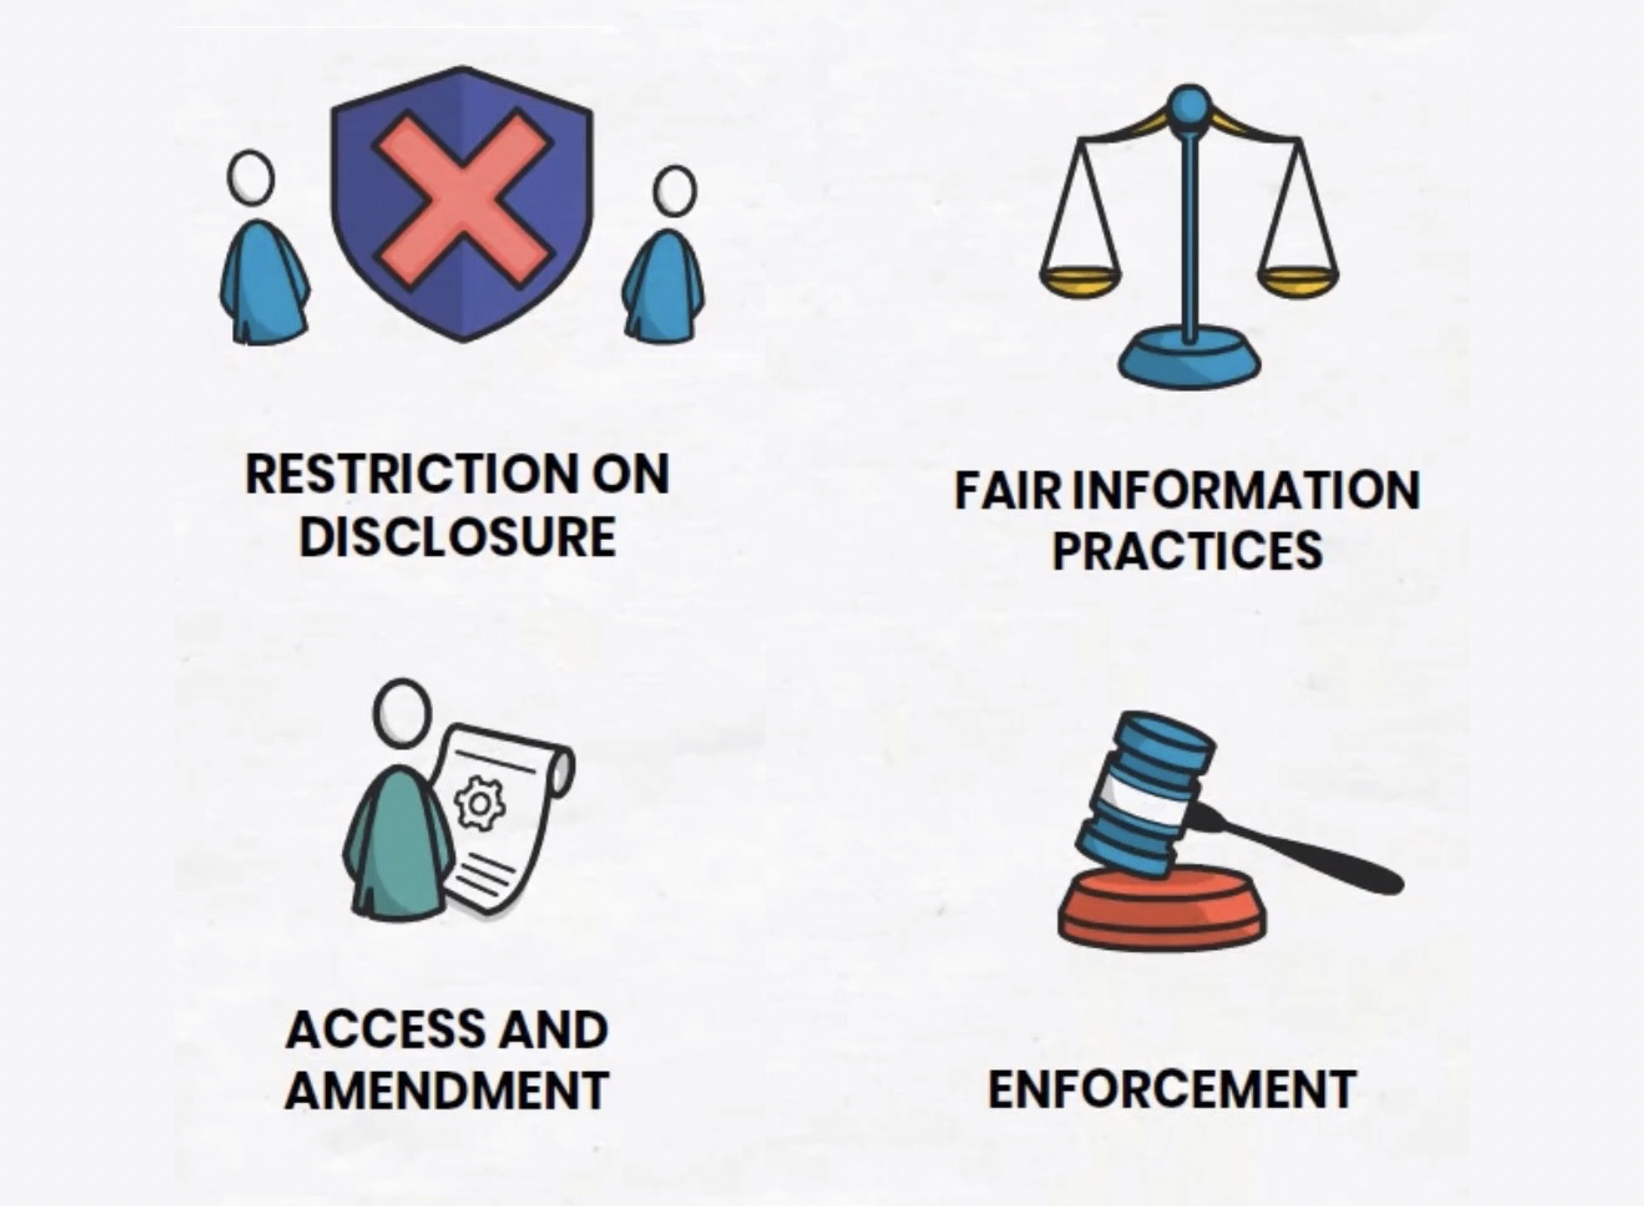 Four icons showing the topics the video covers, namely, restriction on disclosure, fair information practices, access and amendment, and enforcement